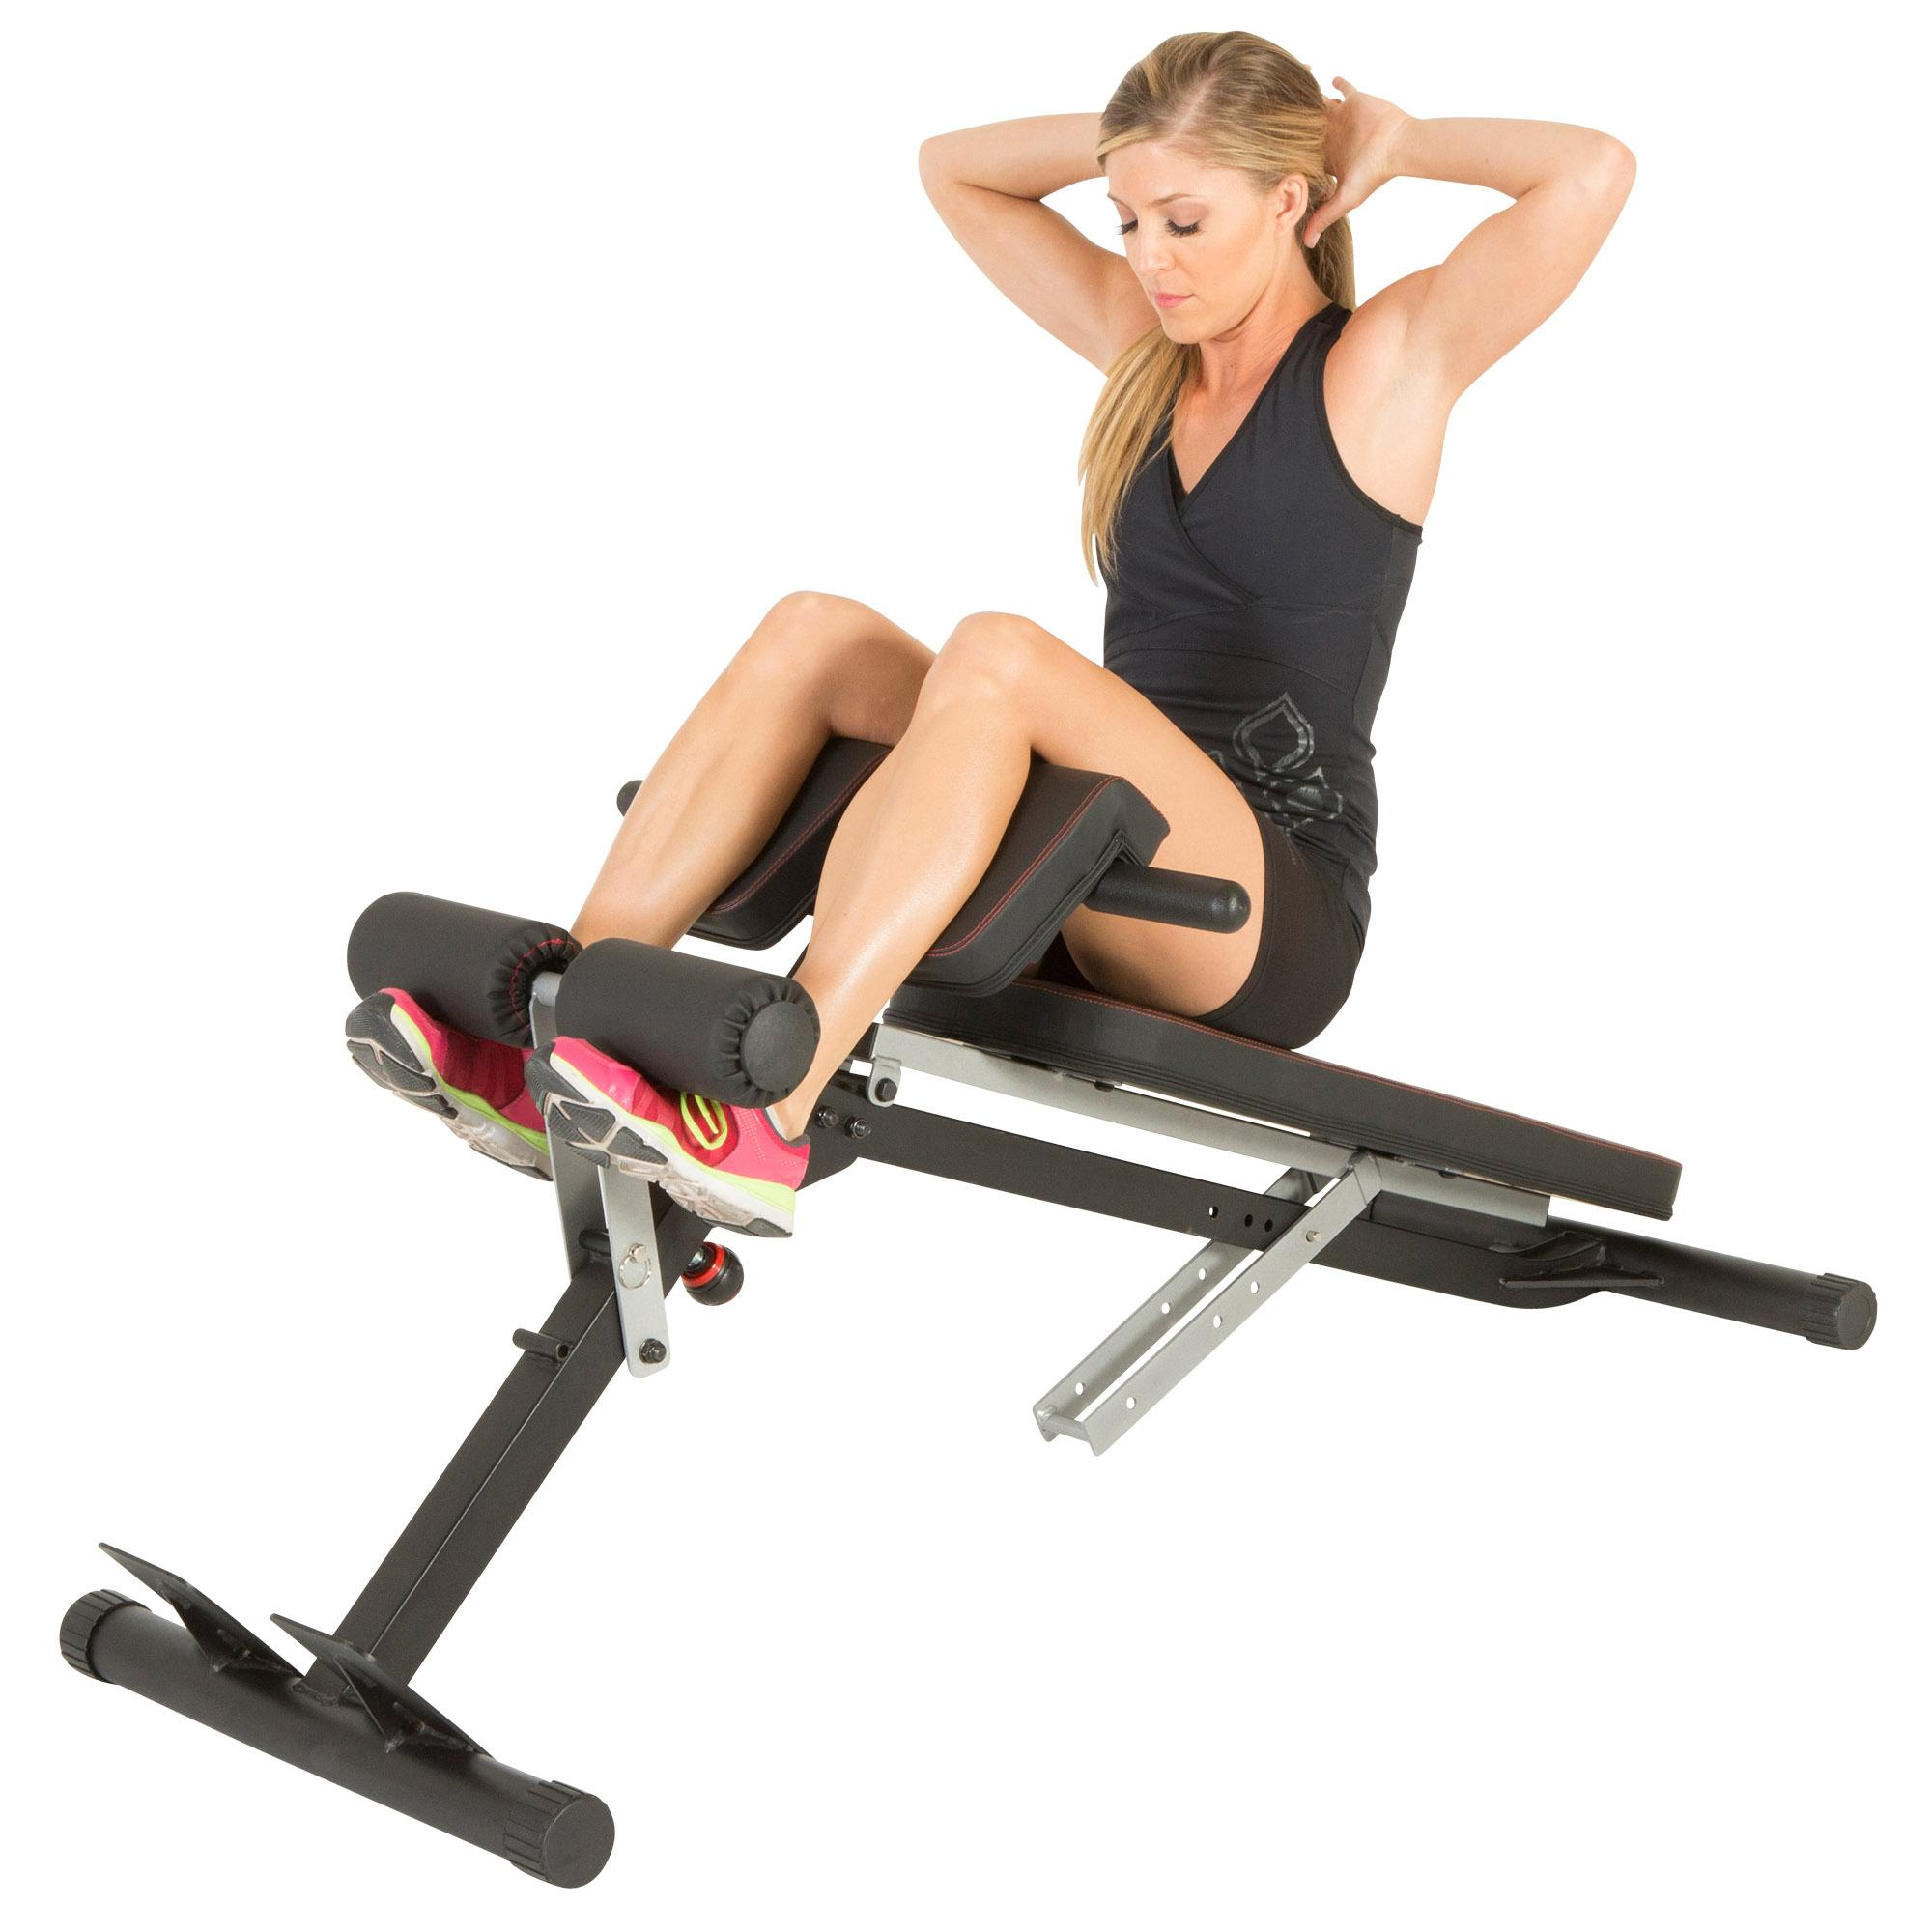 Amazon.com : Fitness Reality X-Class Light Commercial Multi-Workout Abdominal/Hyper Back ...